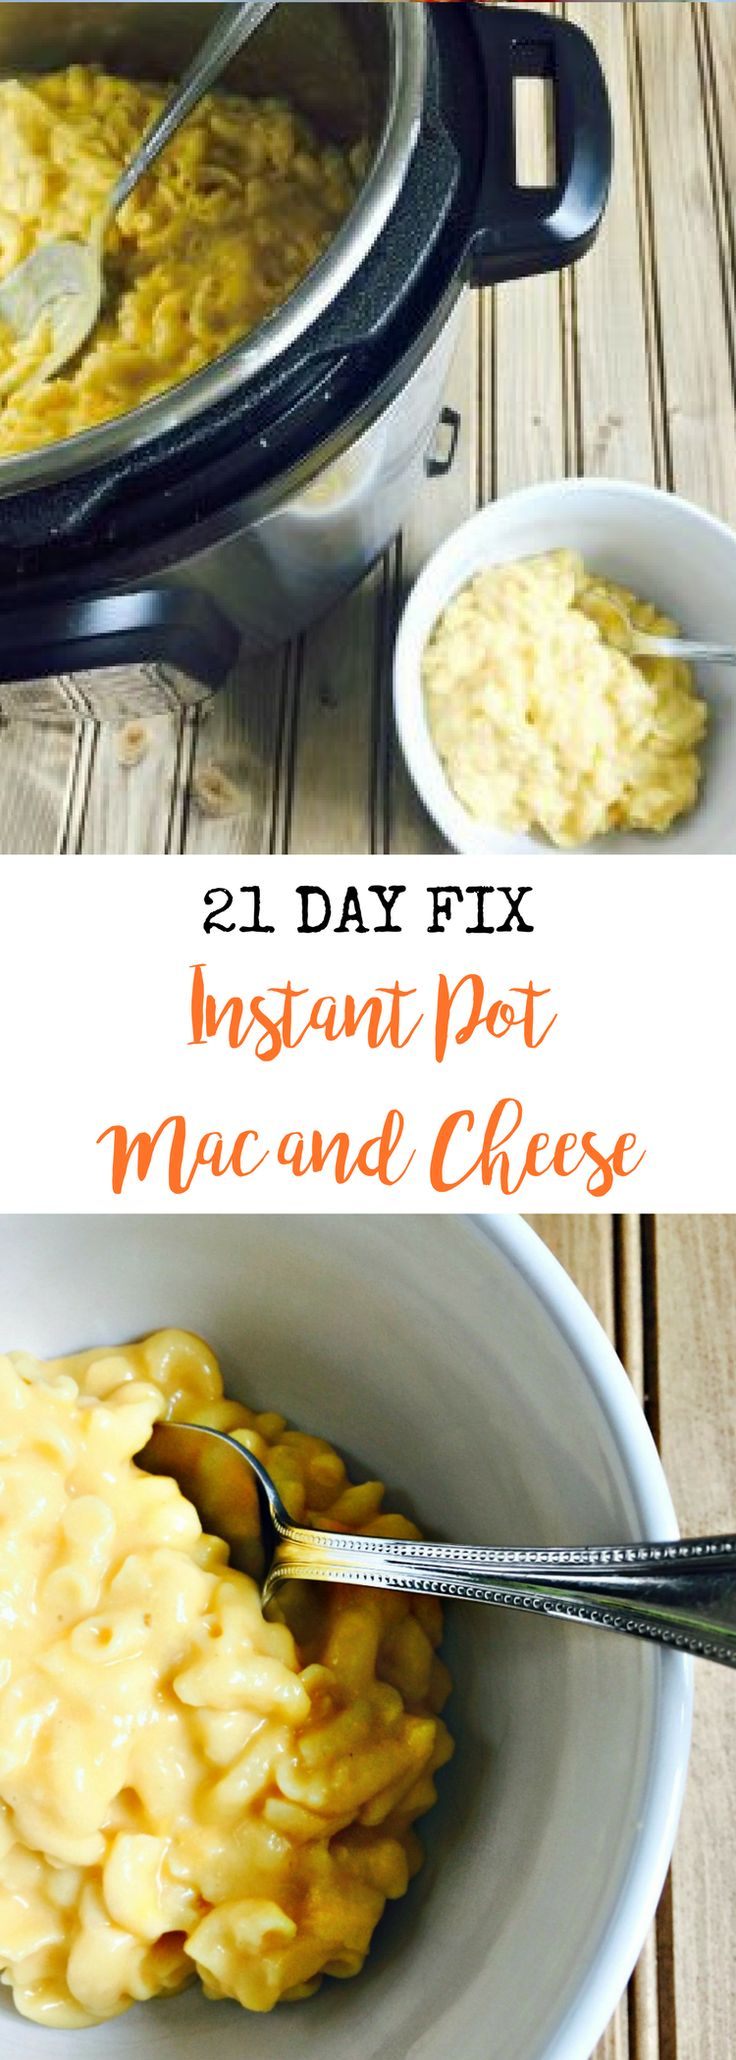 21 Day Fix Instant Pot Mac and Cheese {Gluten-free}   Confessions of a Fit Foodie